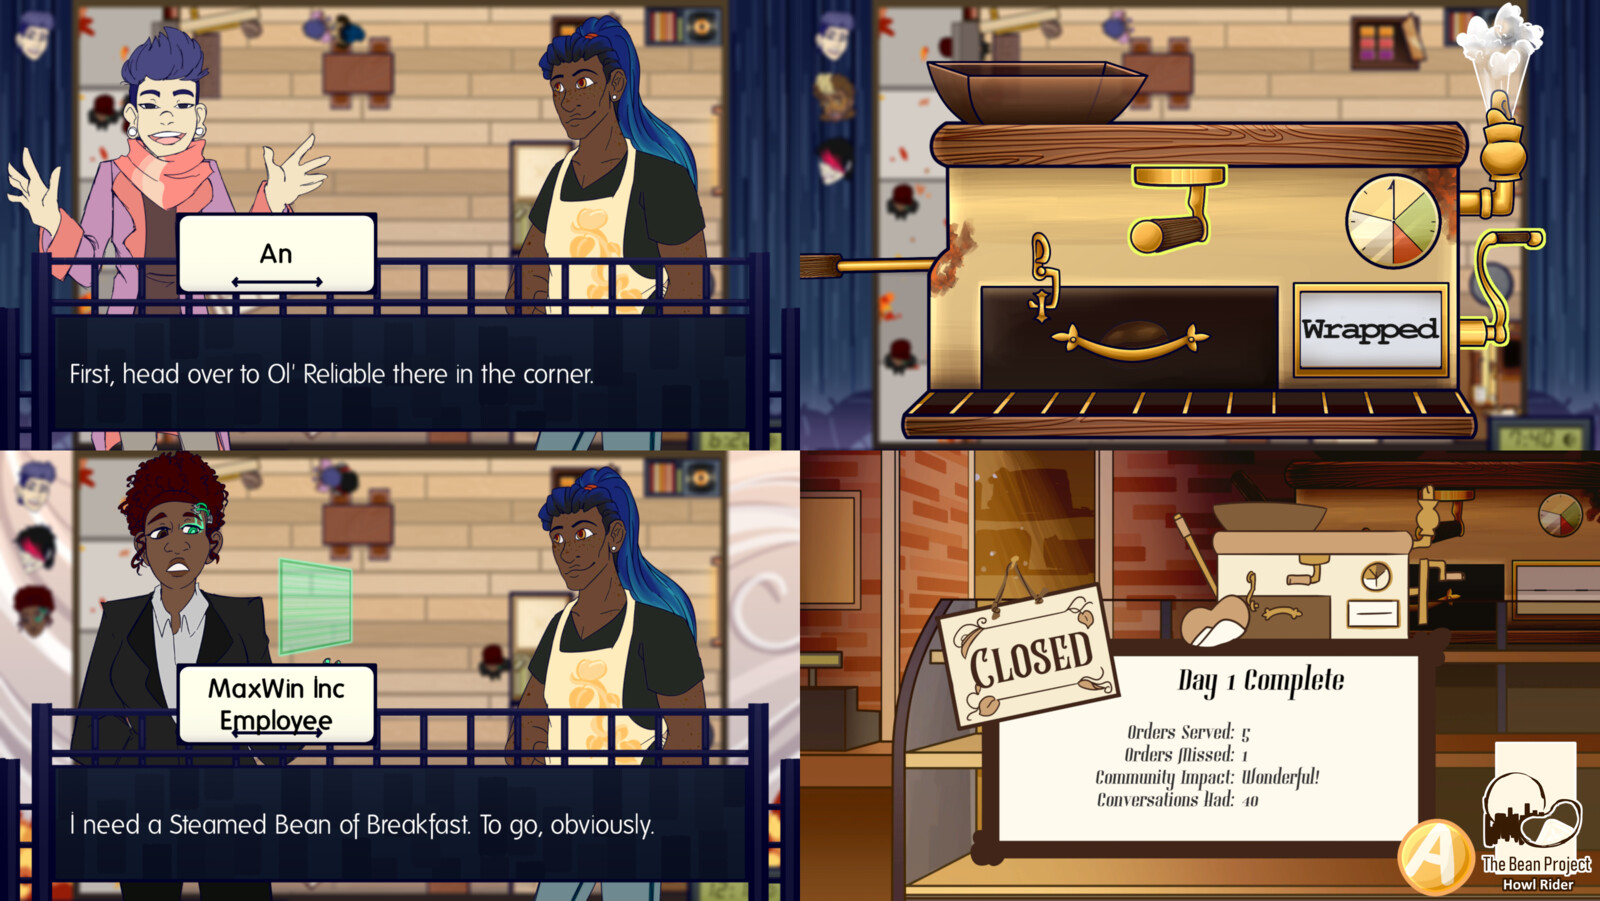 Examples of the the gameplay